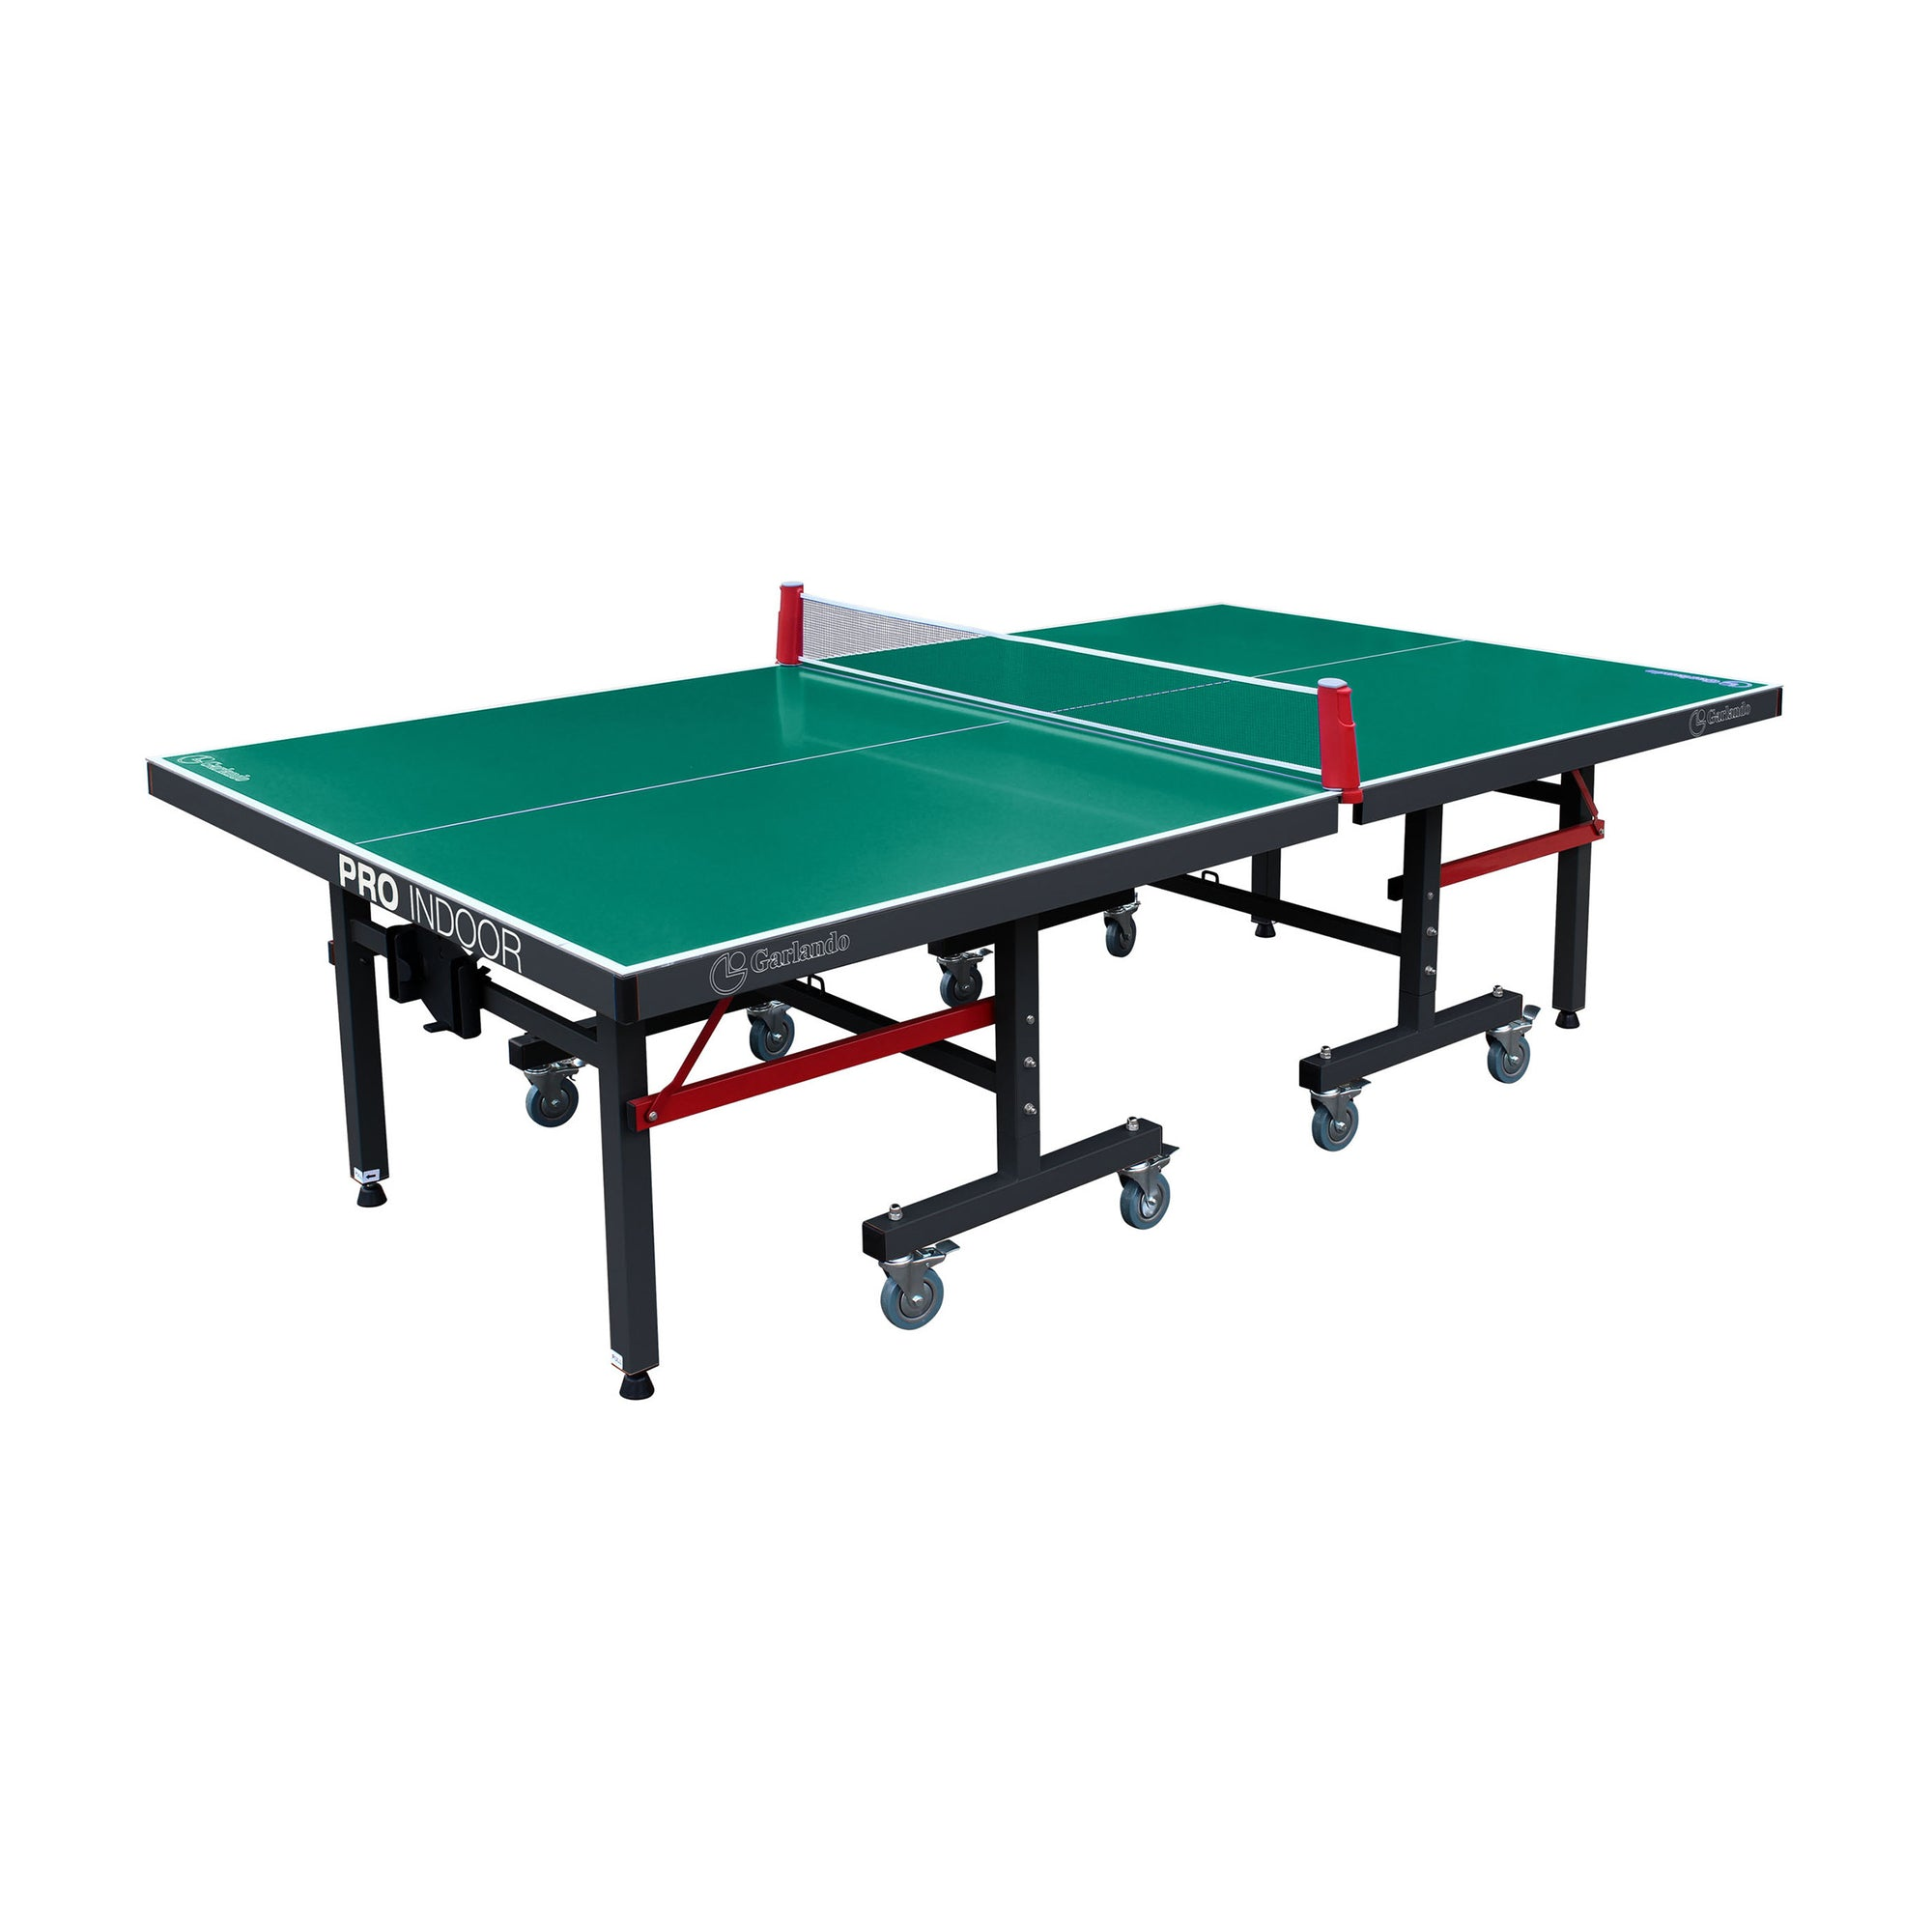 Garlando Pro Indoor Table Tennis Table - Gaming Blaze